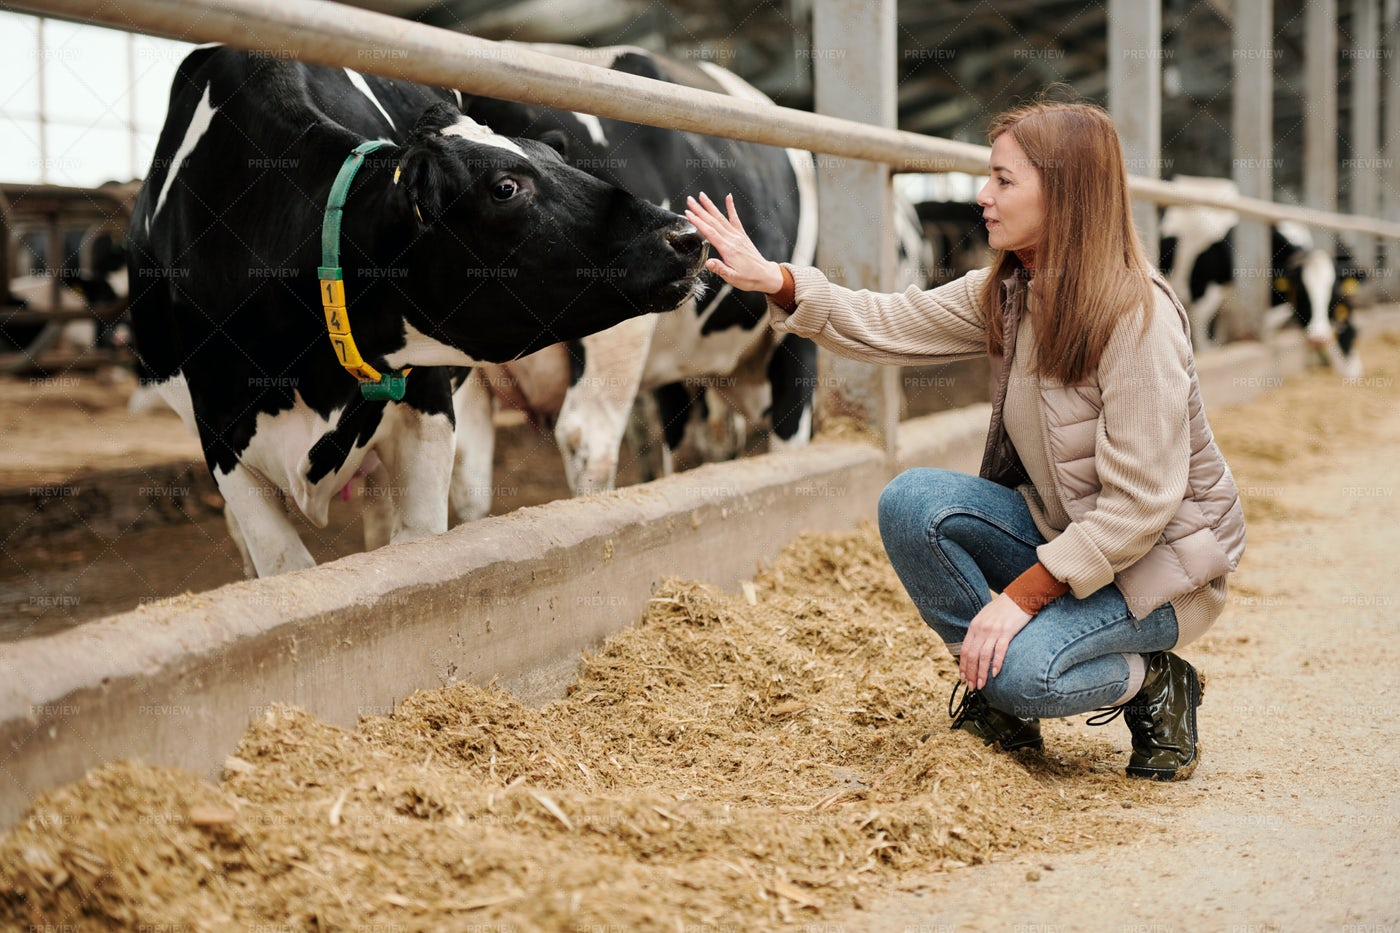 Worker Touching Cow Nose: Stock Photos